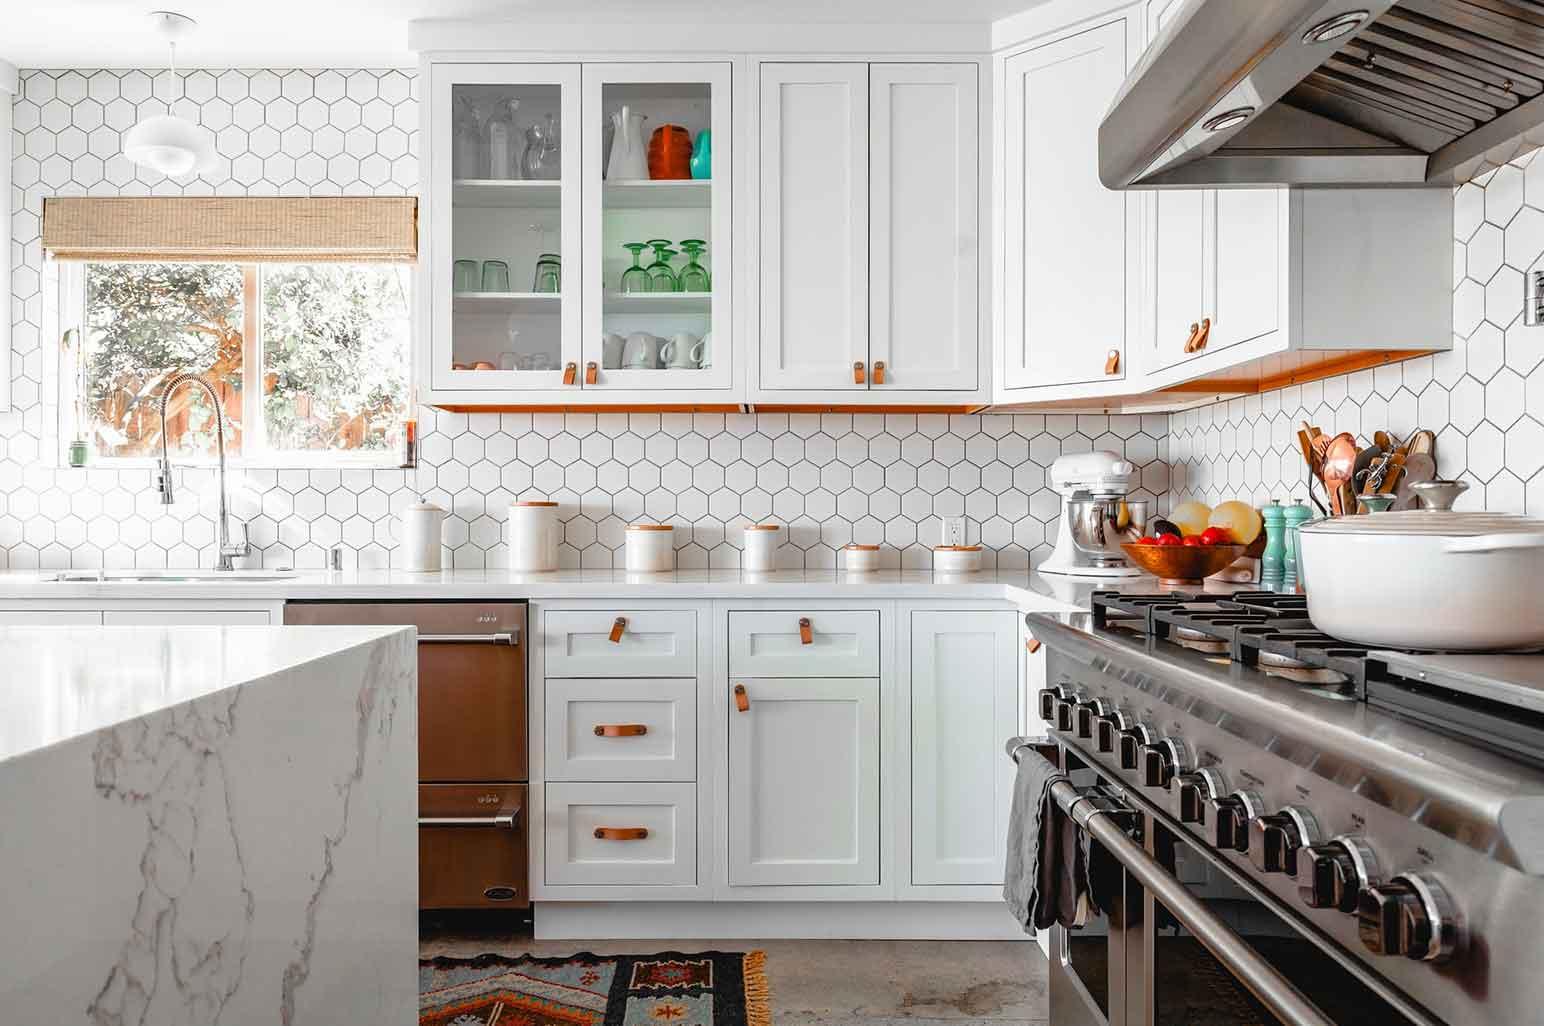 4 Kitchen Styles To Inspire Your Next Renovation